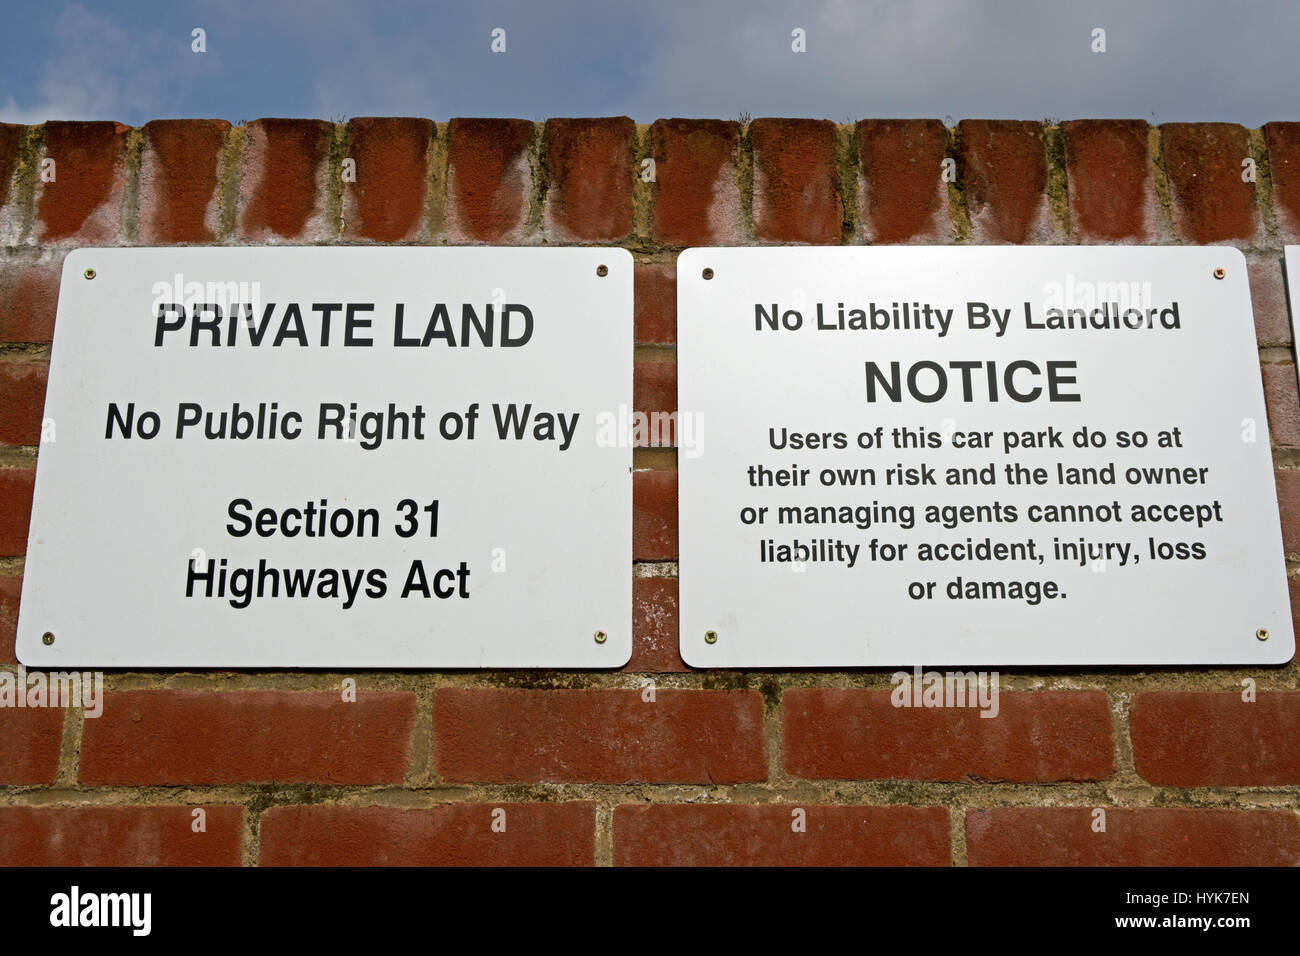 signs stating private land, no public right of way, section 31 highways act, and no liability by landlord of car - Stock Image